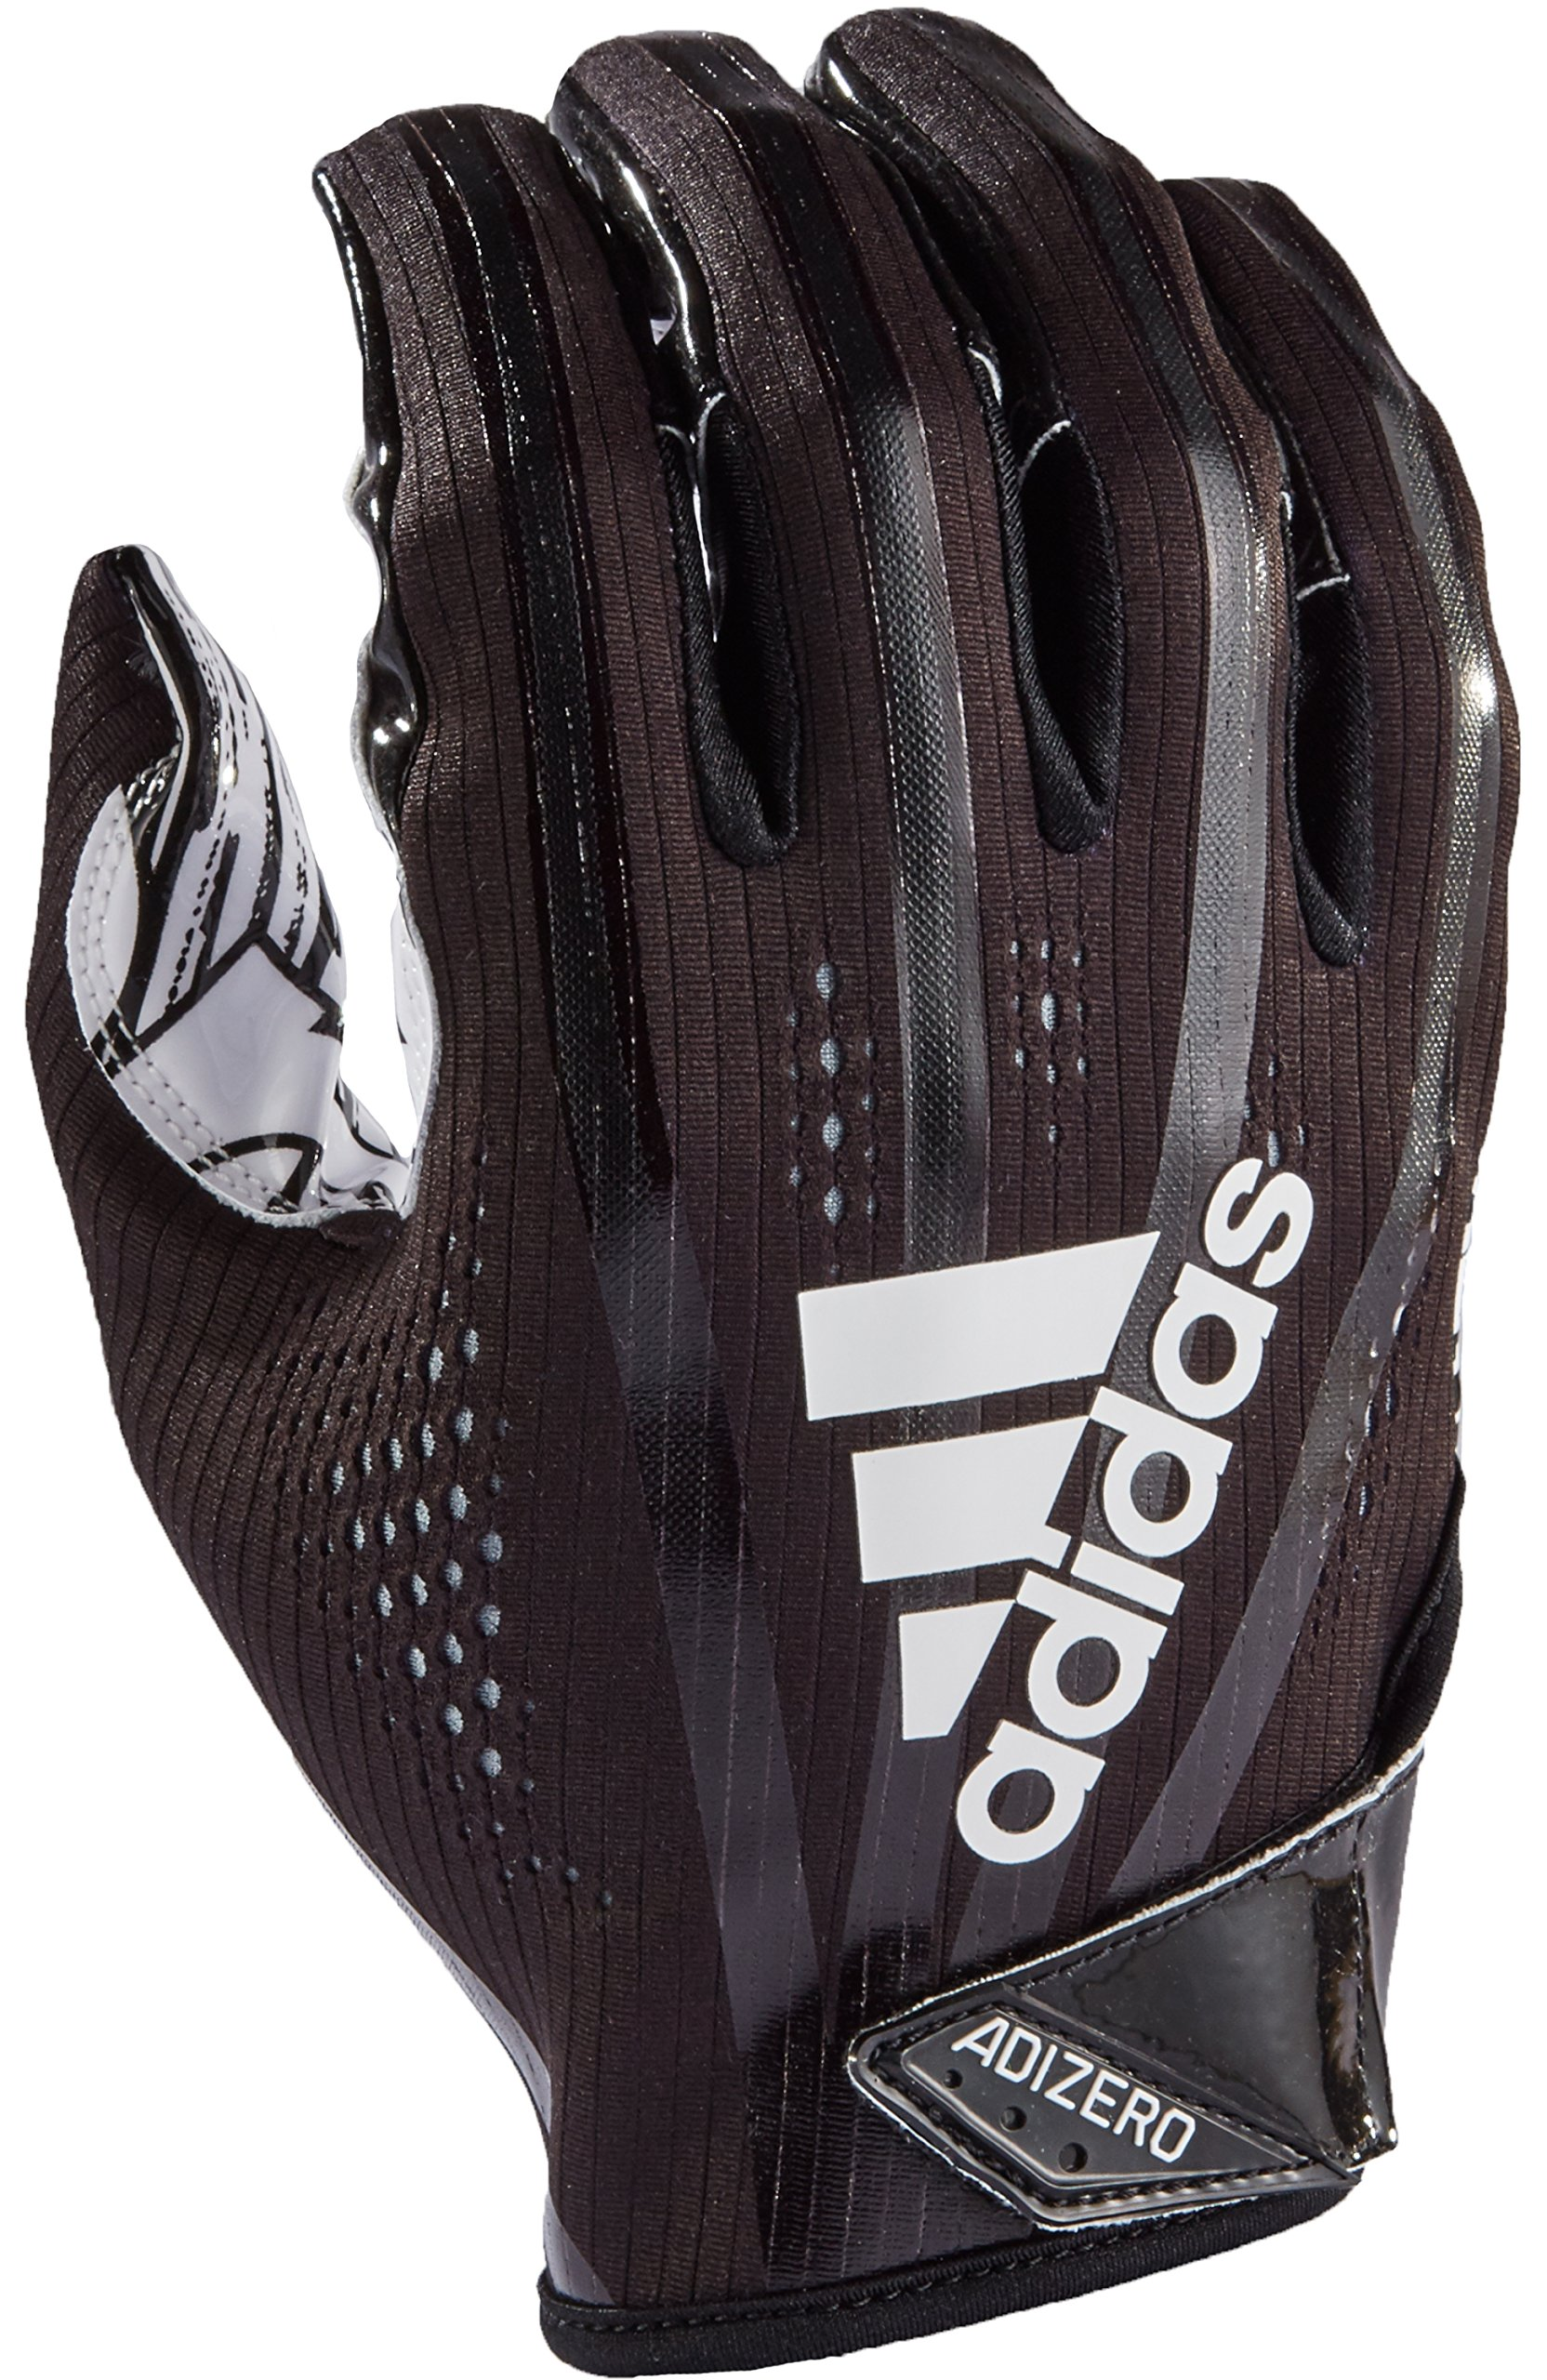 adidas AF1000 Adizero 7.0 Receiver's Gloves, Black, Small by adidas (Image #1)